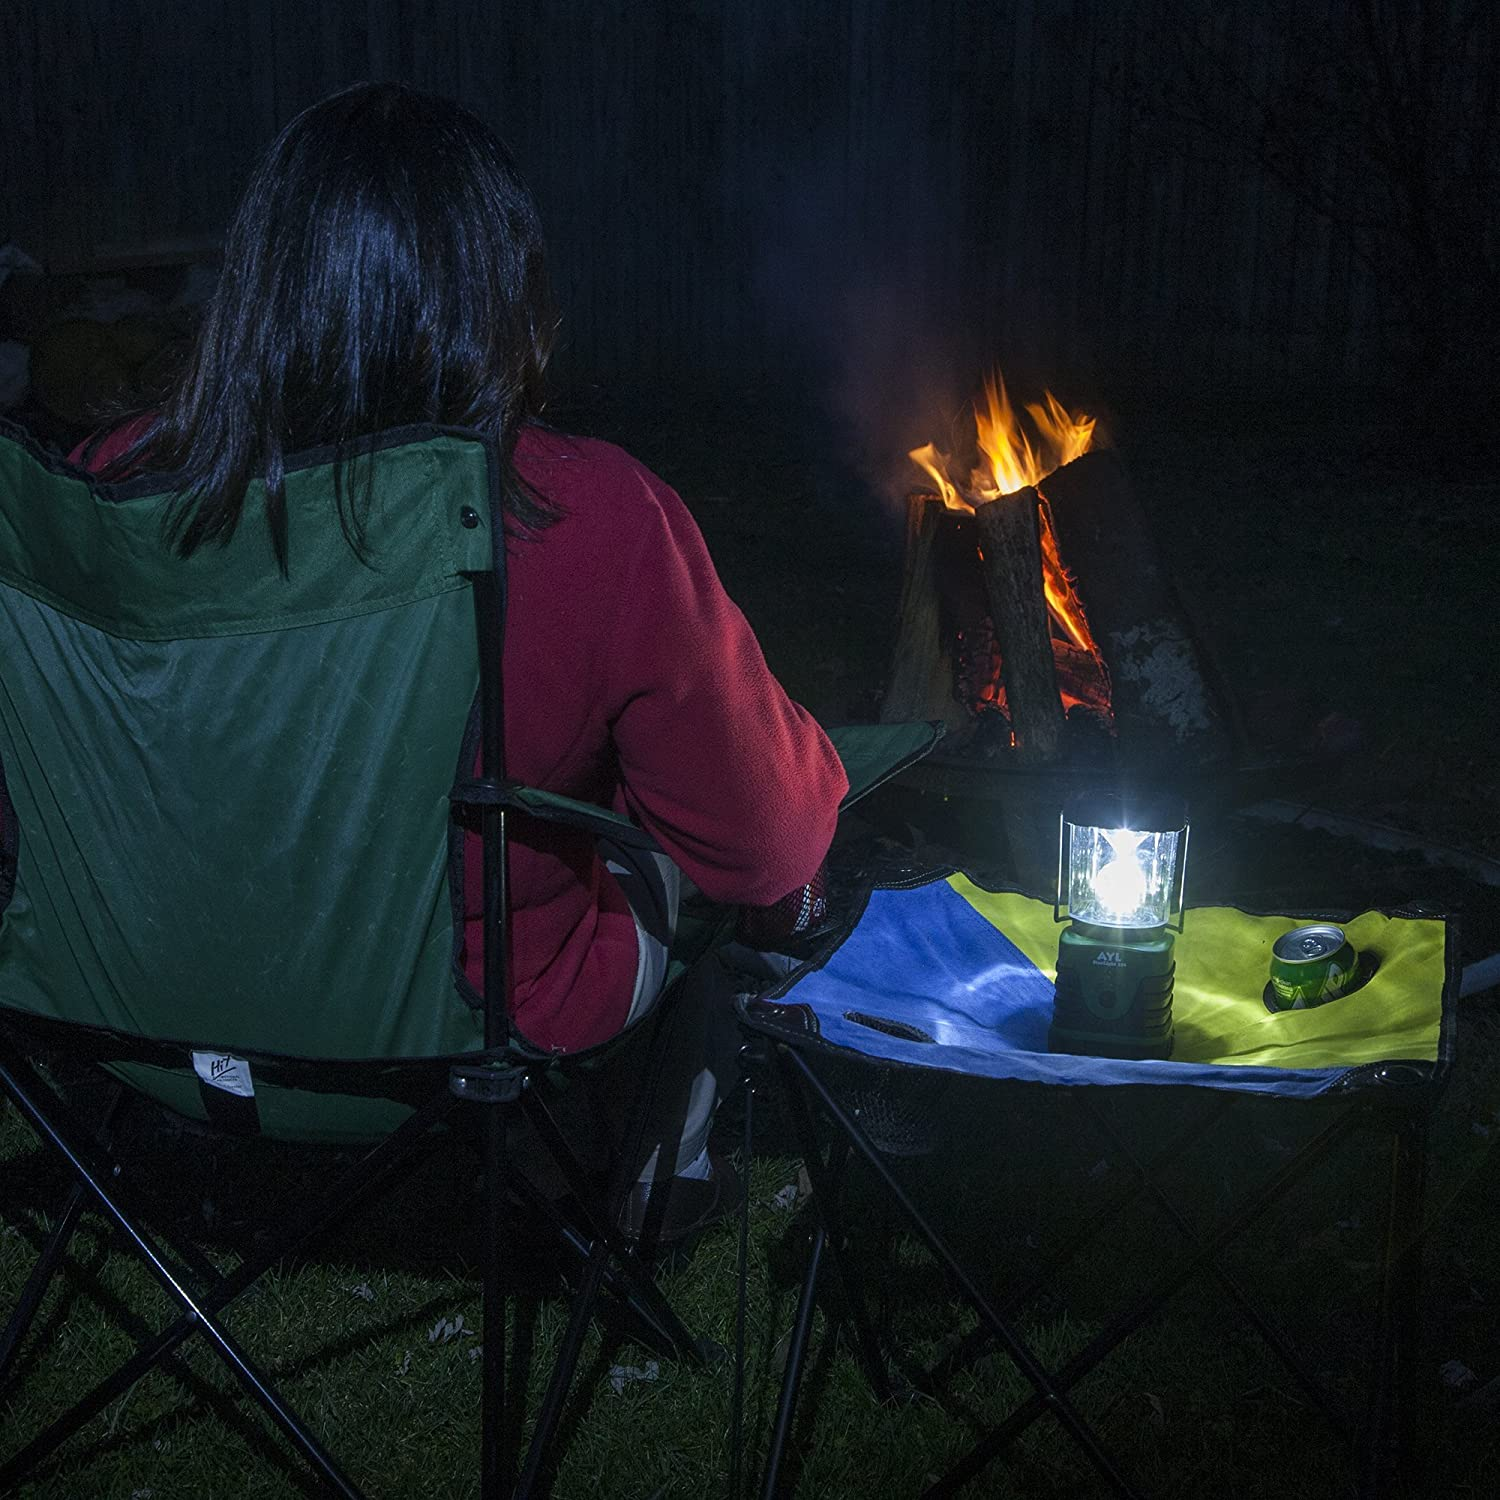 AYL Starlight - Water Resistant - Shock Proof - Battery Powered Ultra Long Lasting Up to 6 Days Straight - 1000 Lumens Ultra Bright LED Lantern - Perfect Camping Lantern for Hiking, Camping : Sports & Outdoors